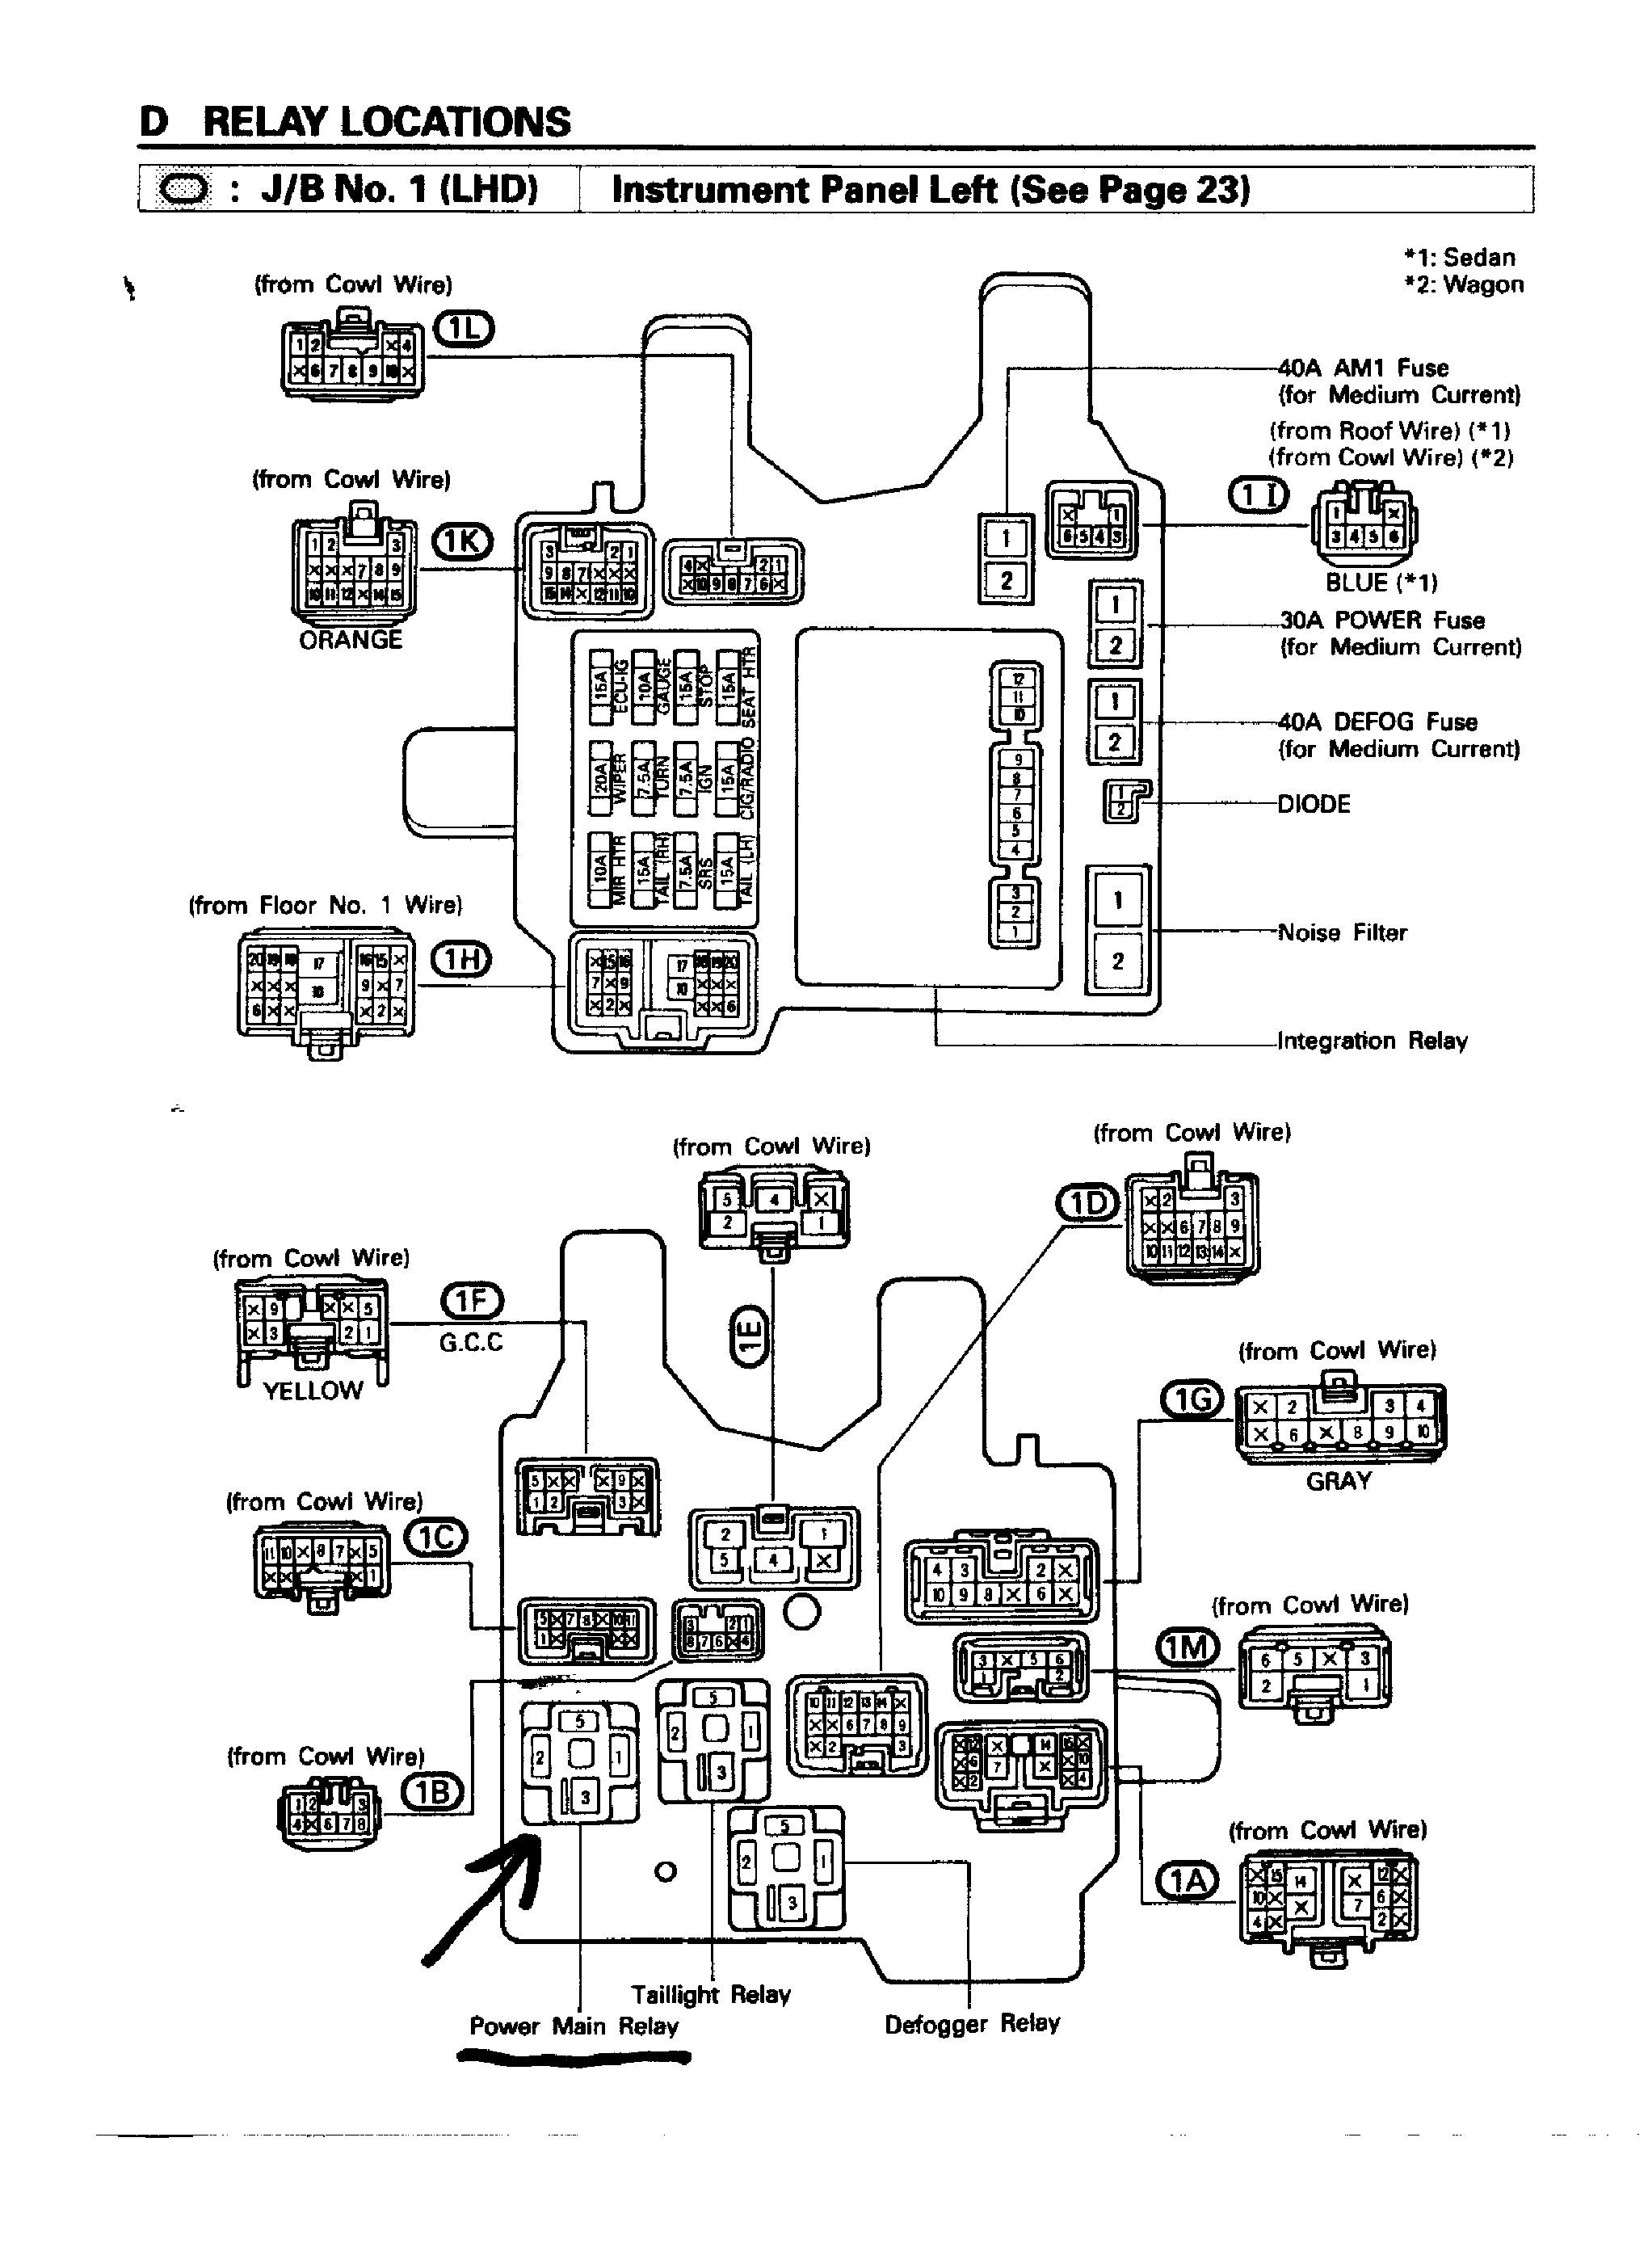 2008 Toyota Tacoma Alternator Wiring Diagram Getting Ready With 2012 Toyota Tacoma Wiring